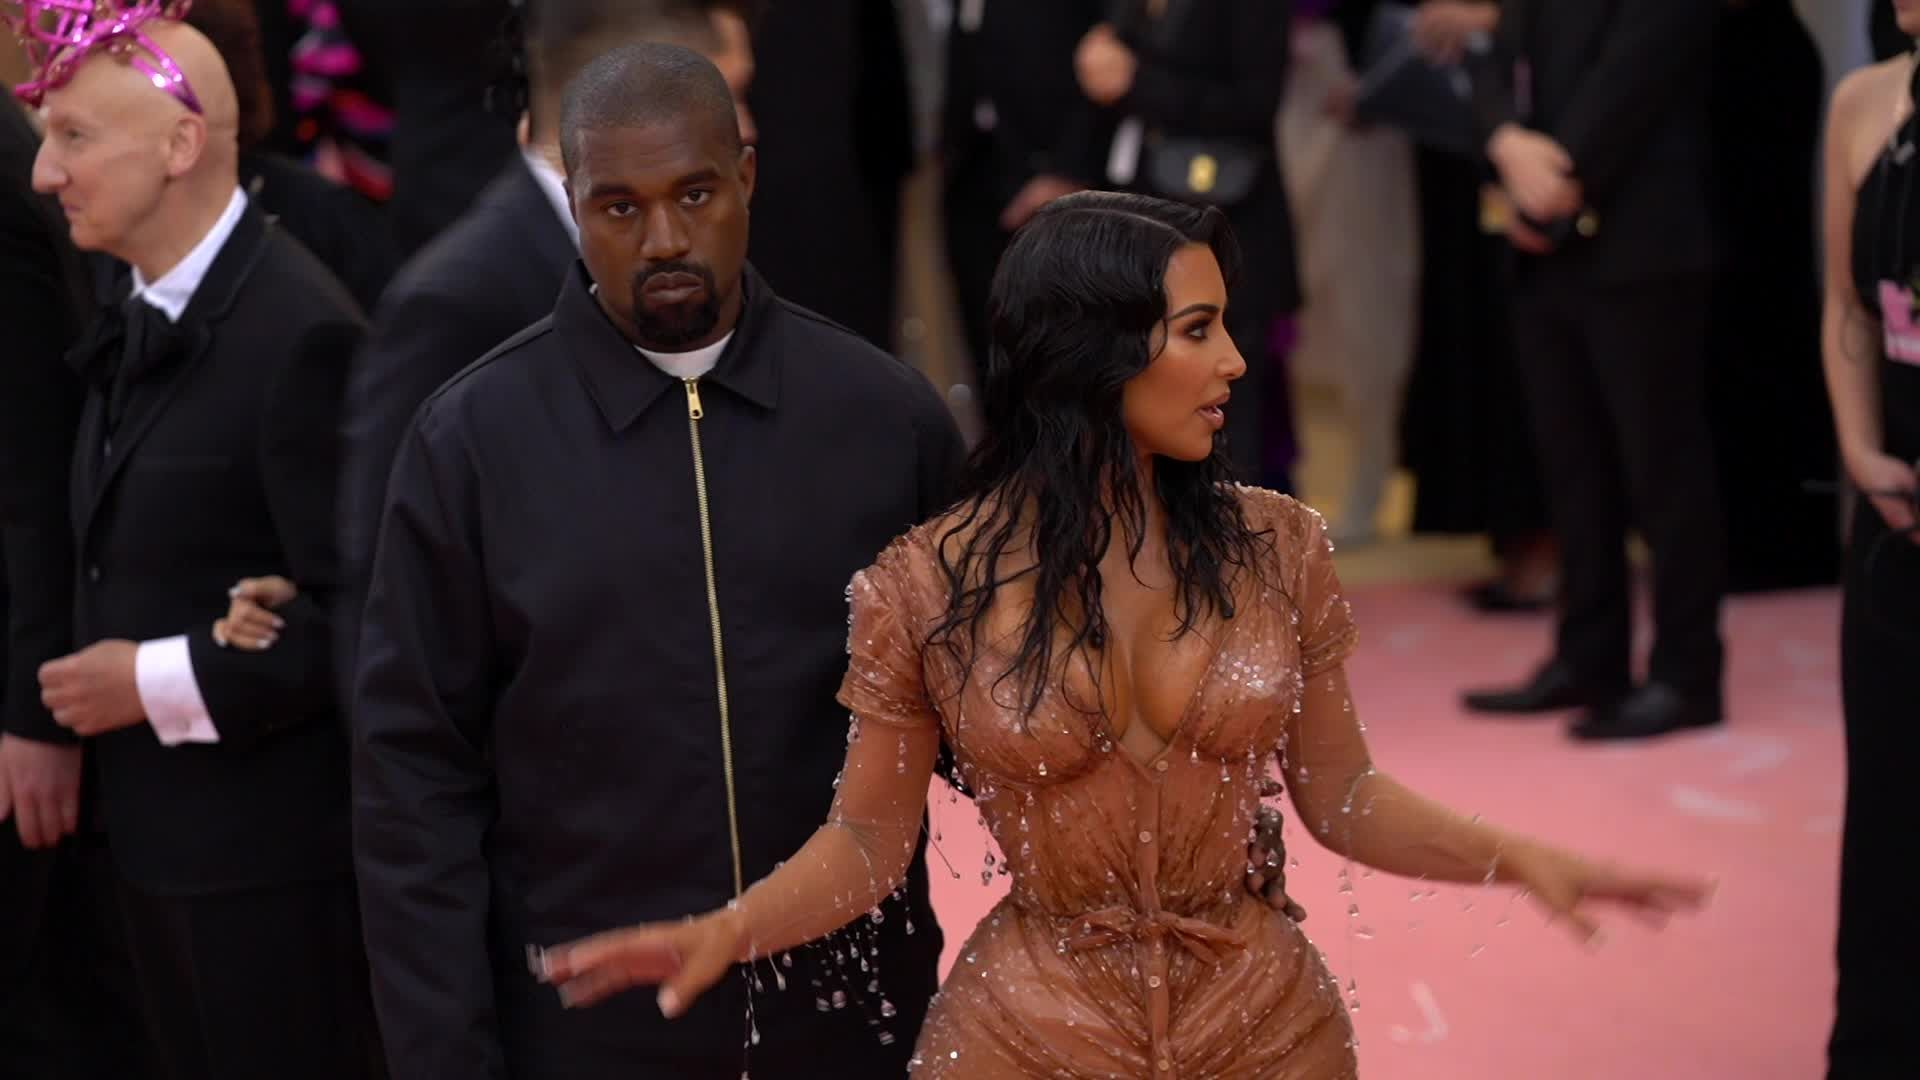 Kim Kardashian Was Emotionally Prepared to Have Her Sisters Wipe Her Pee at the Met Gala